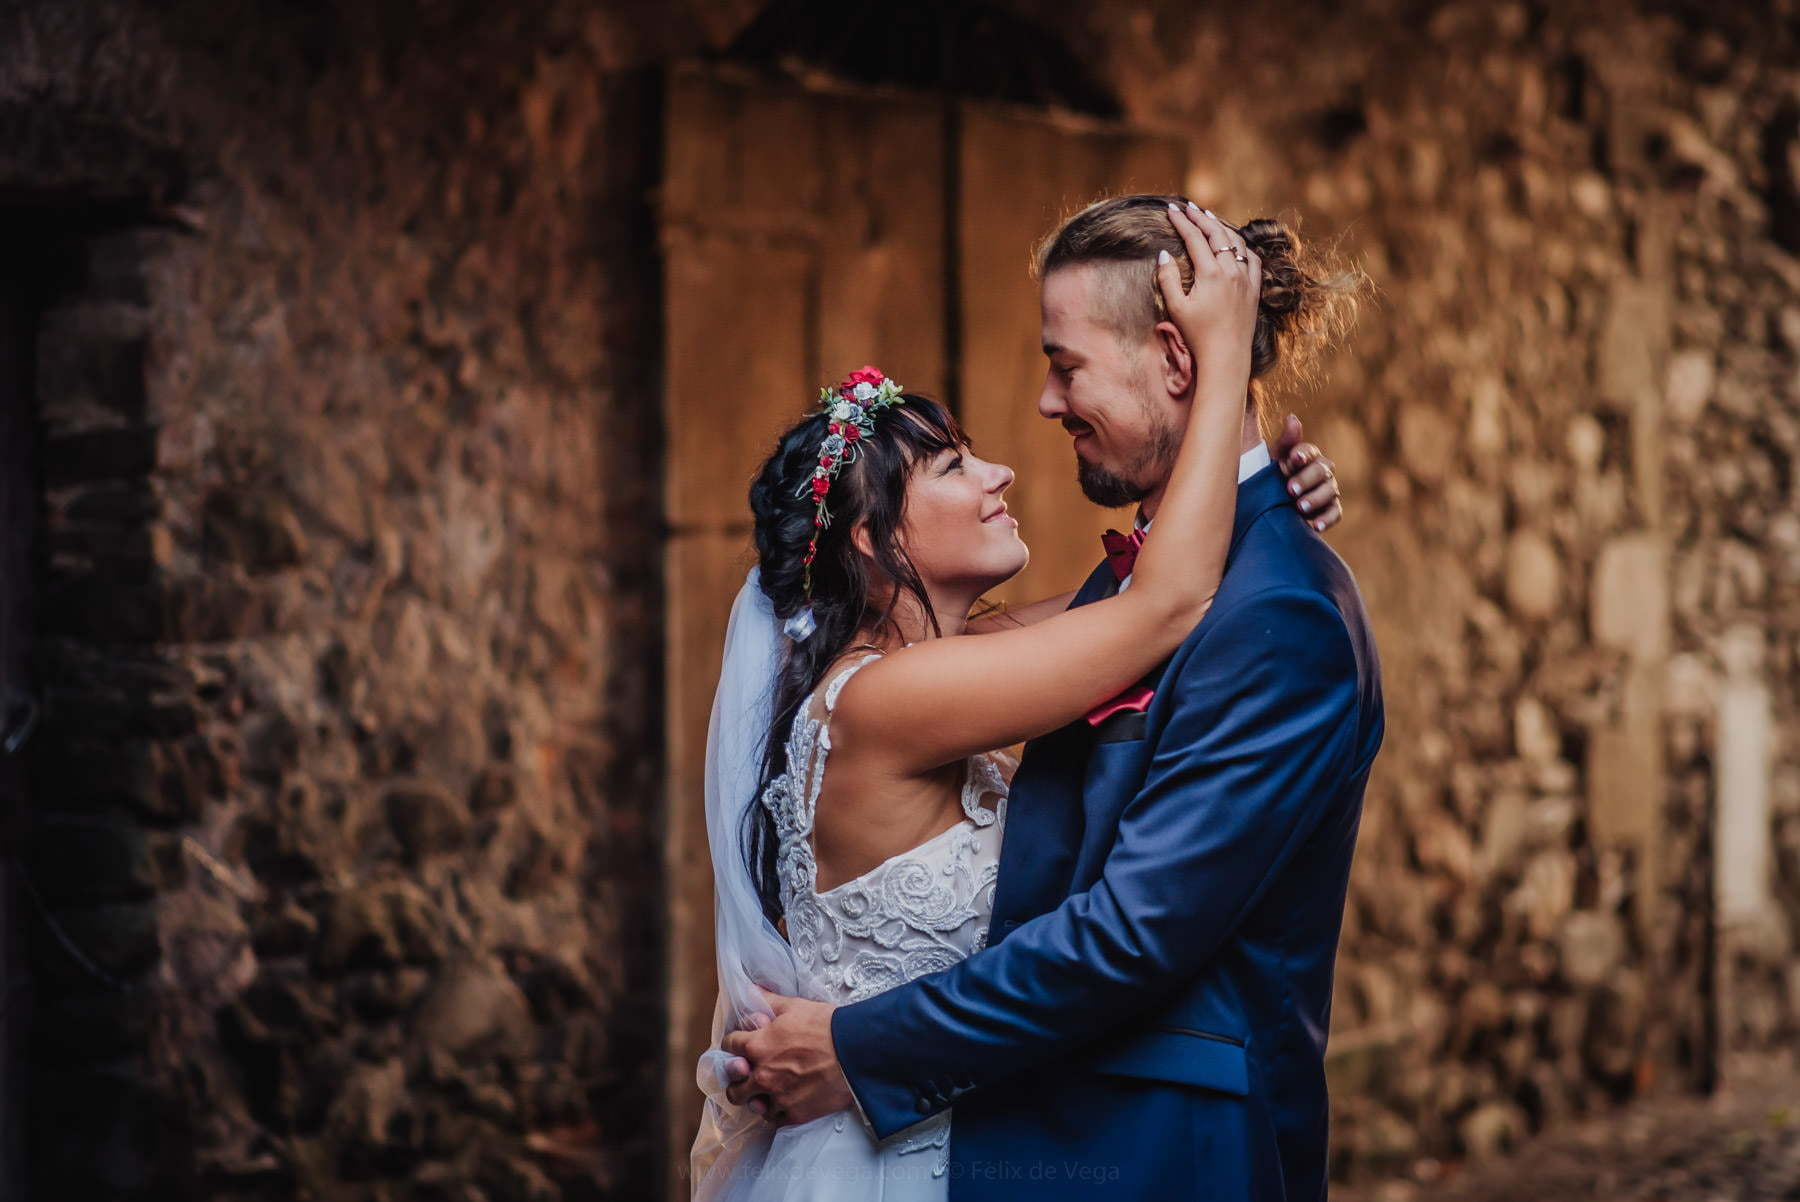 wedding photoshoot of bride and groom in Italy